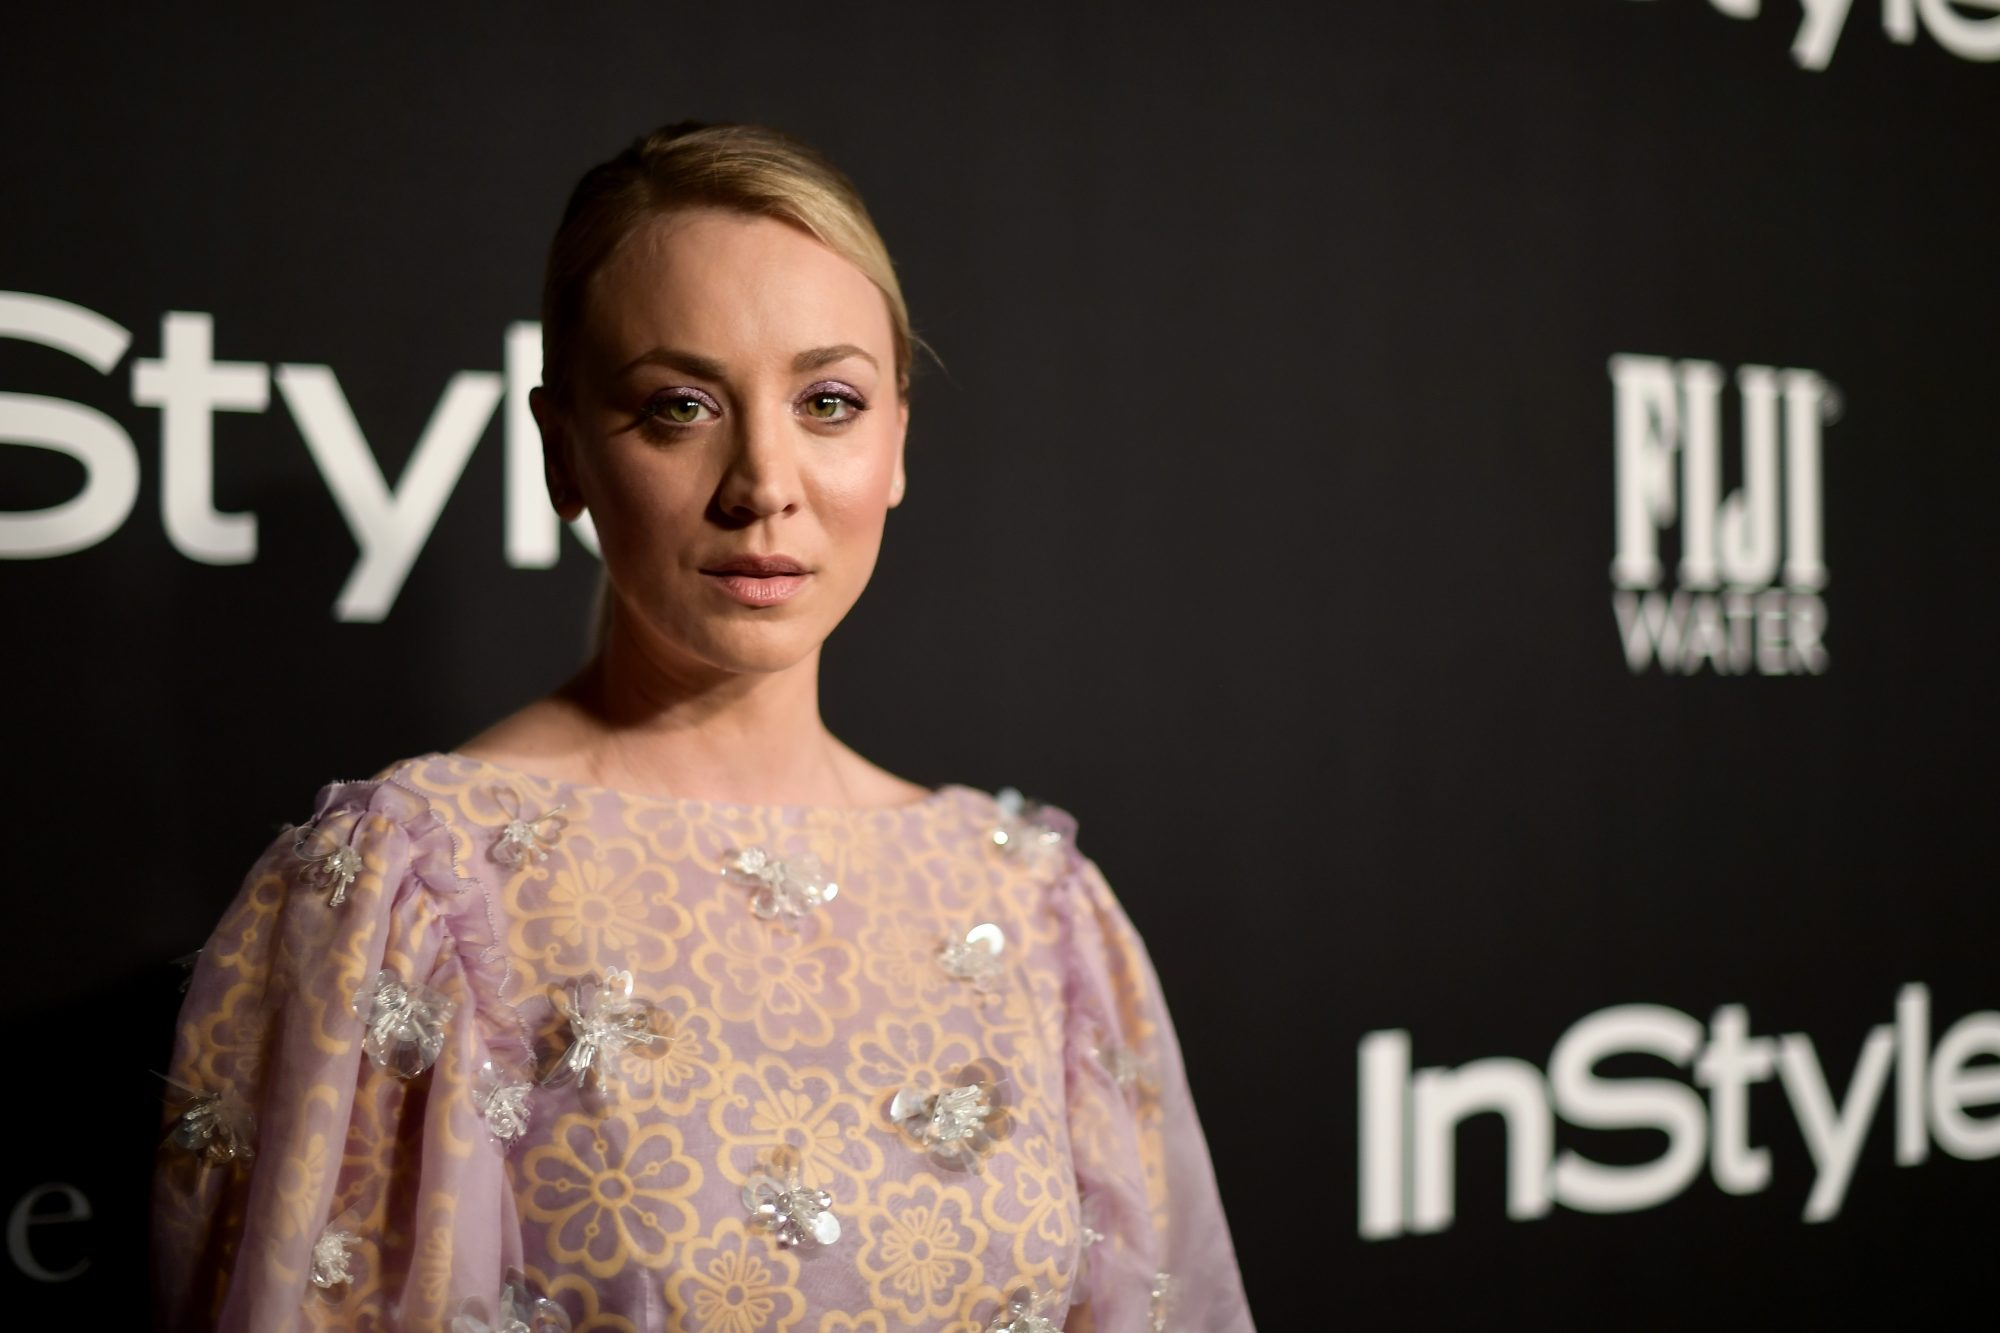 Kaley Cuoco Slams 'Social Media Trolls' for Saying She Looks Pregnant: 'Seriously, Shut Up'